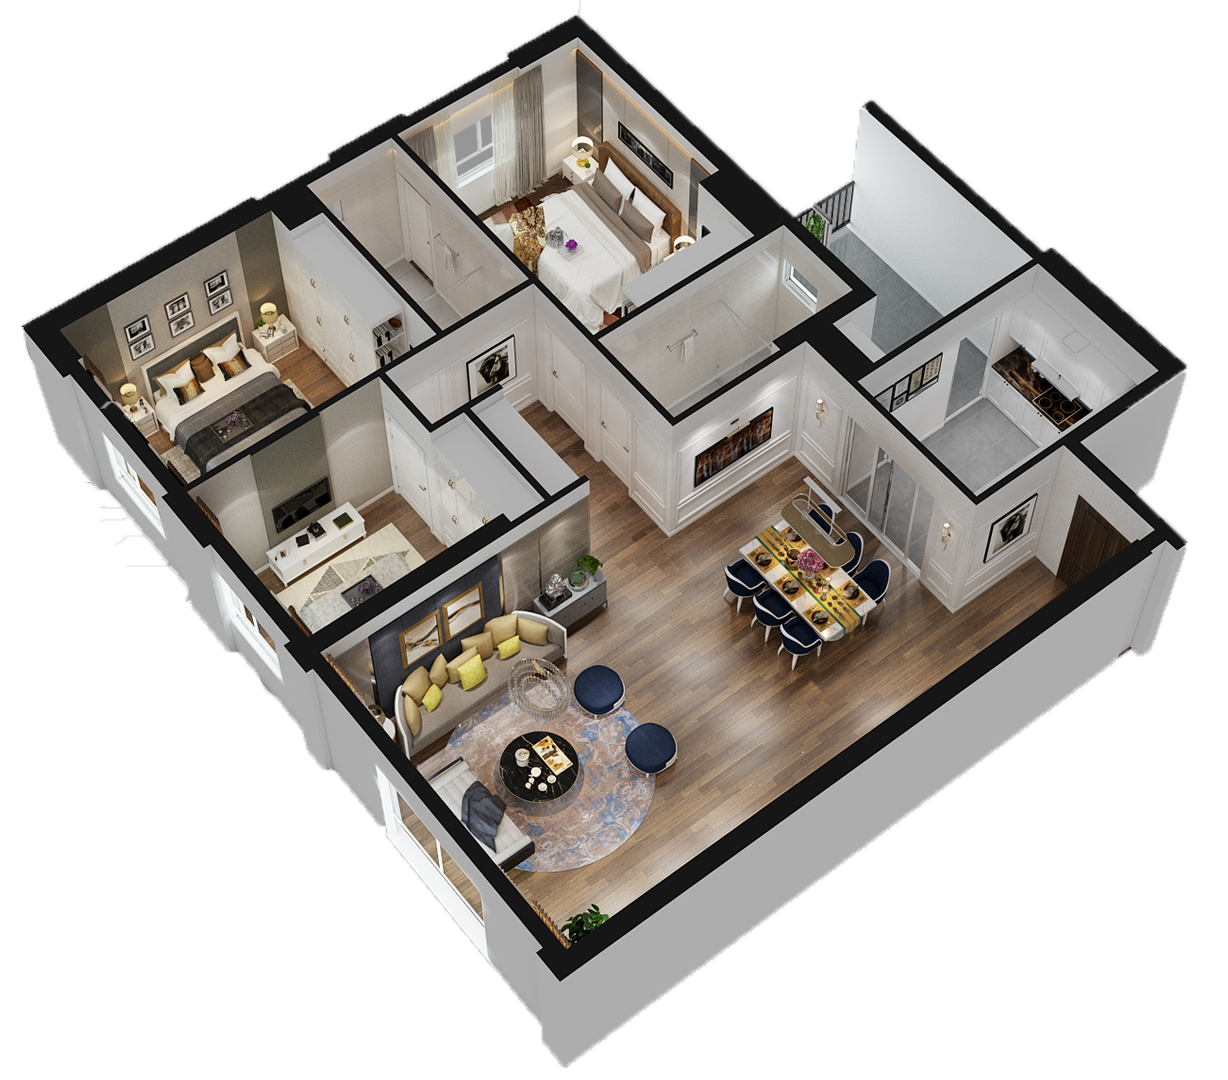 Accutour professional 3d rendering services in south for Floorplans 3d